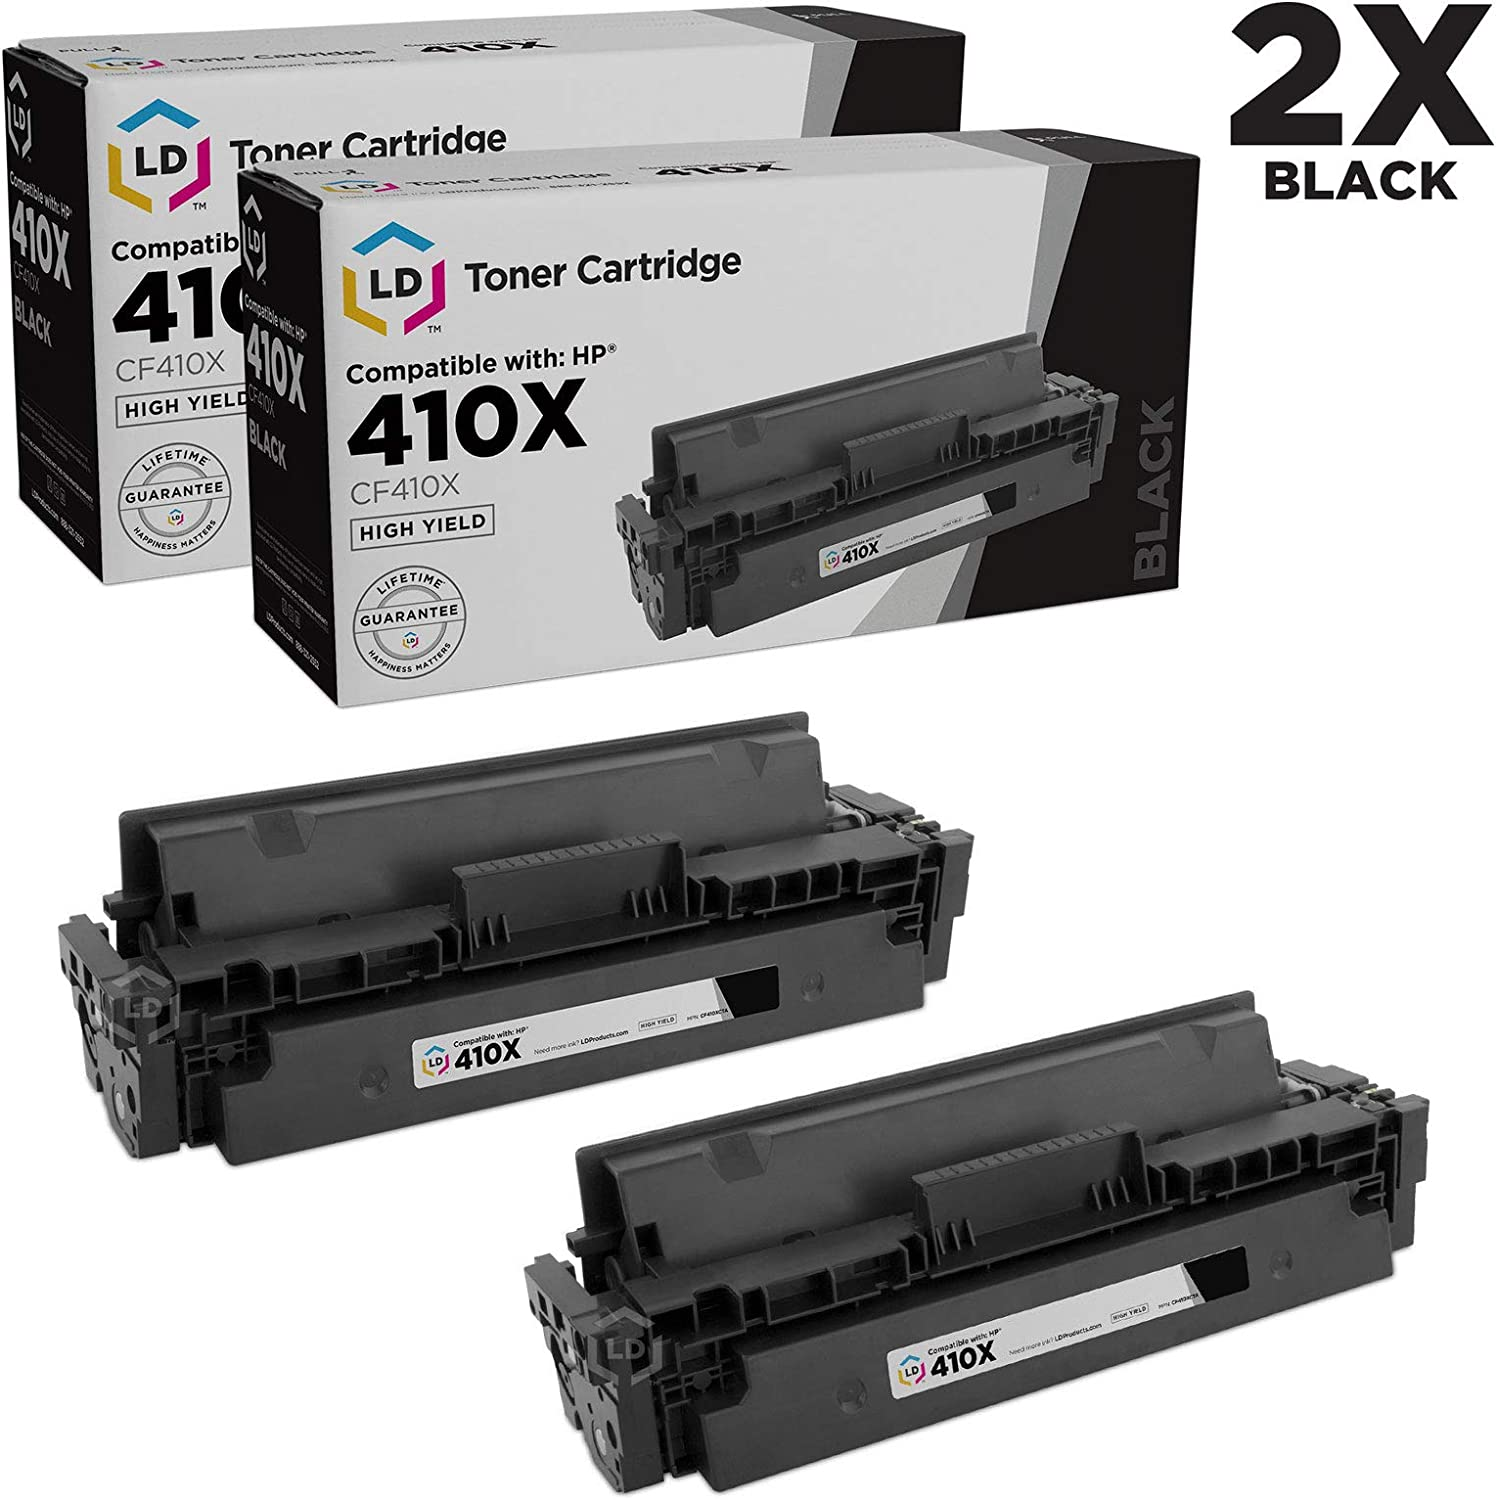 LD Compatible Toner Cartridge Replacement for HP 410X CF410X High Yield Black, 2-Pack